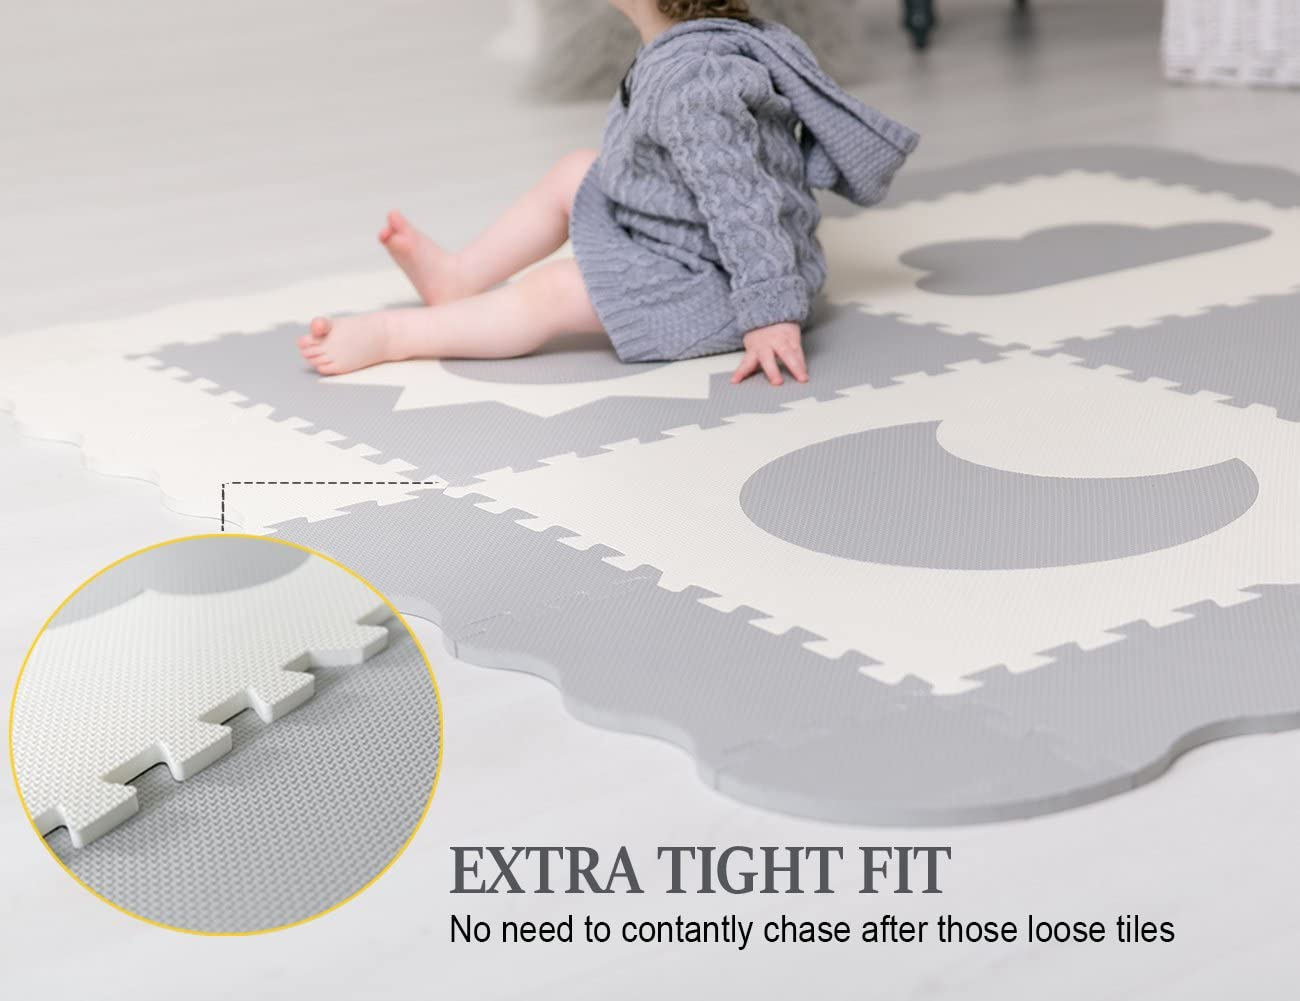 Non Toxic Thick Floor Mat for Kids Baby Play Mat Tiles Grey /& White Interlocking Foam Playroom /& Nursery Playmat Safe /& Protective For Infants Tummy Time 61 x 61 Extra Large